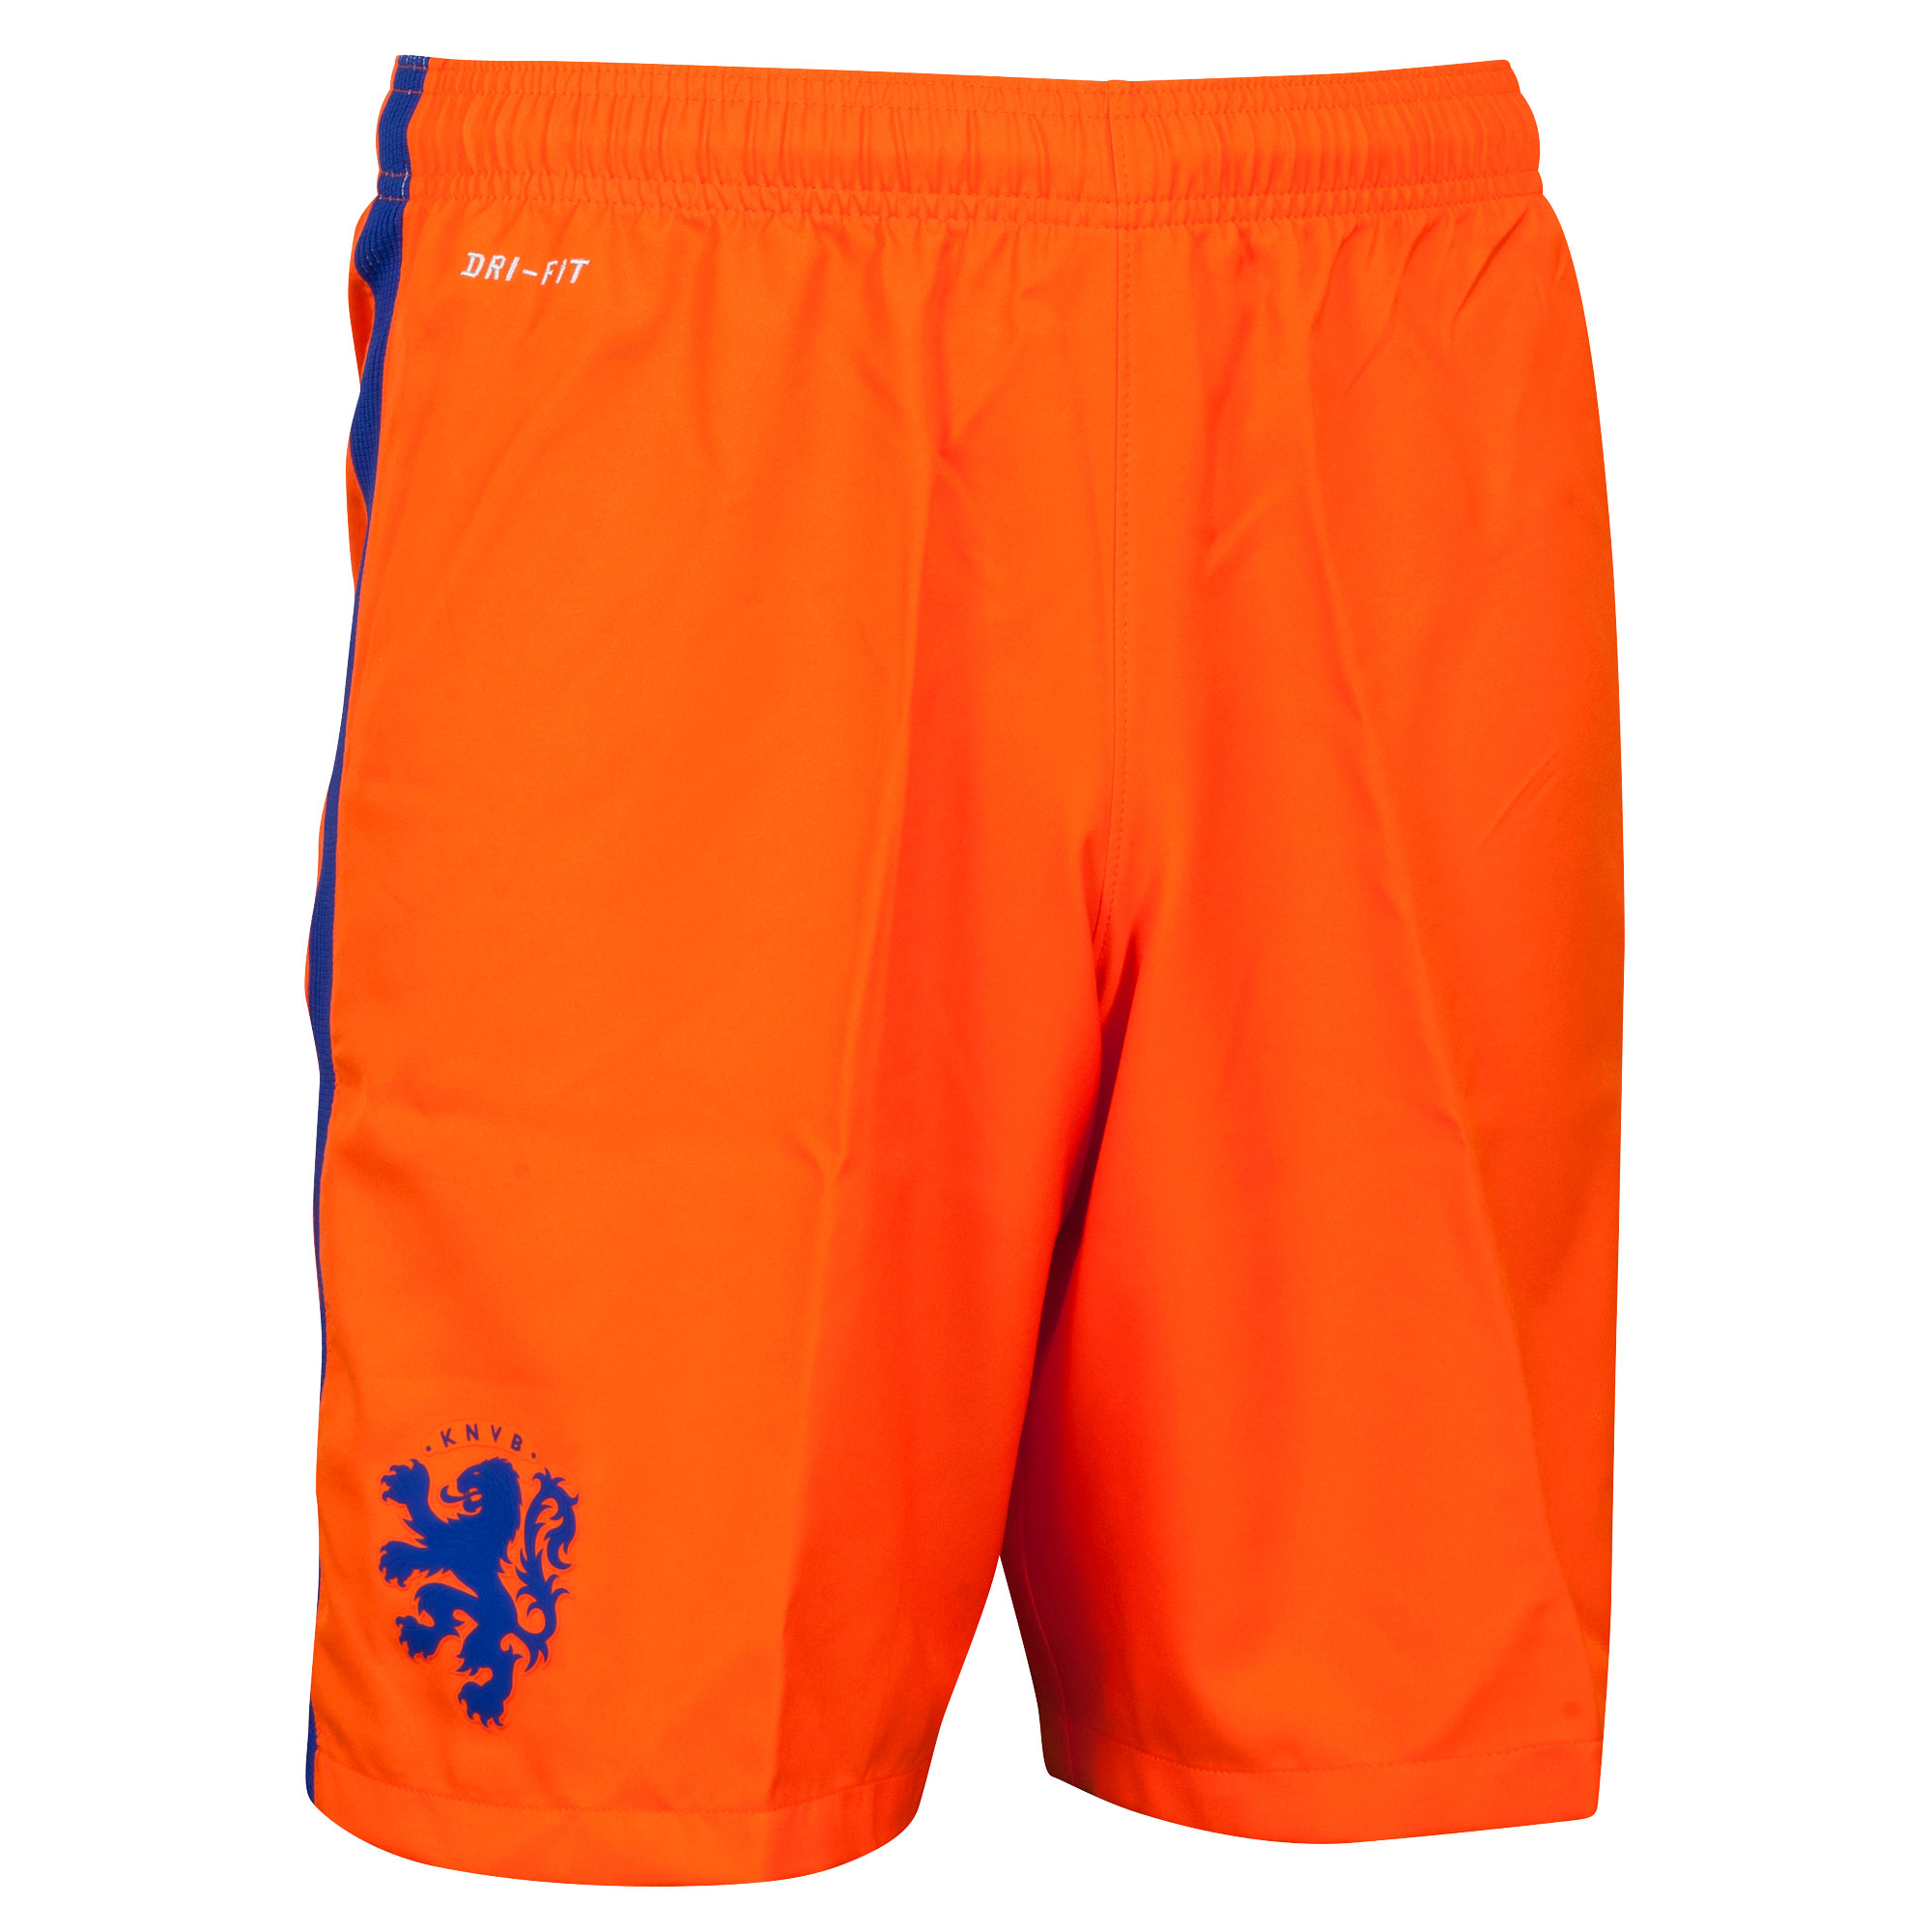 Holland Home KIDS Shorts 2016 / 2017 - 140-152